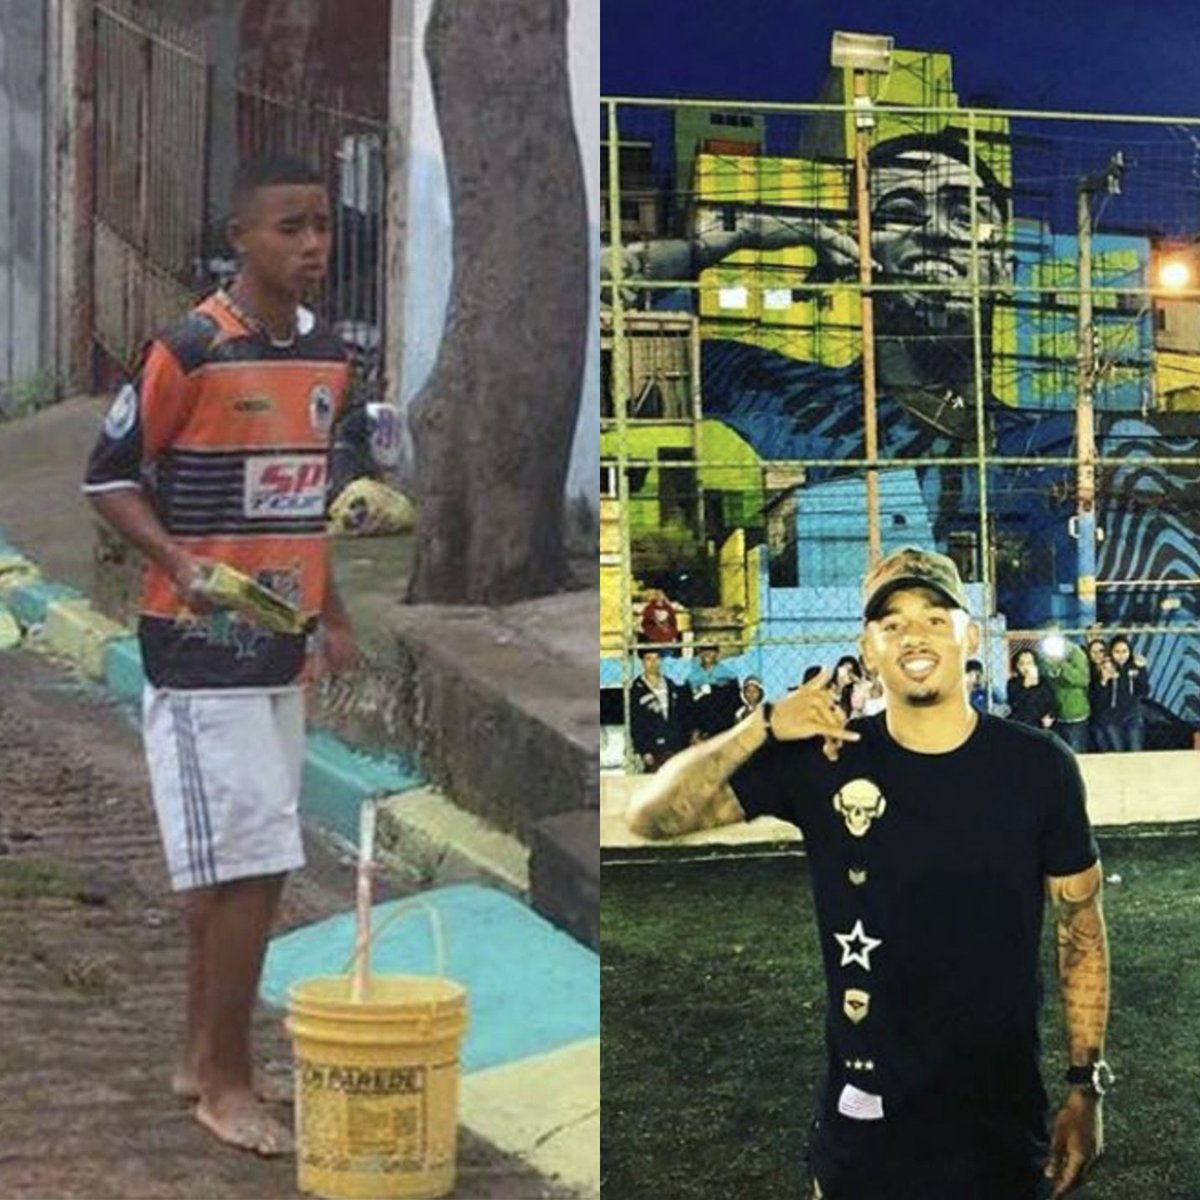 Gabriel Jesus' life has changed massively in four years! A true inspiration 🙌  Before the 2014 World Cup:  🎨 Painting the streets of São Paulo  Before the 2018 World Cup:  🇧🇷 A giant mural has been painted of him in his hometown